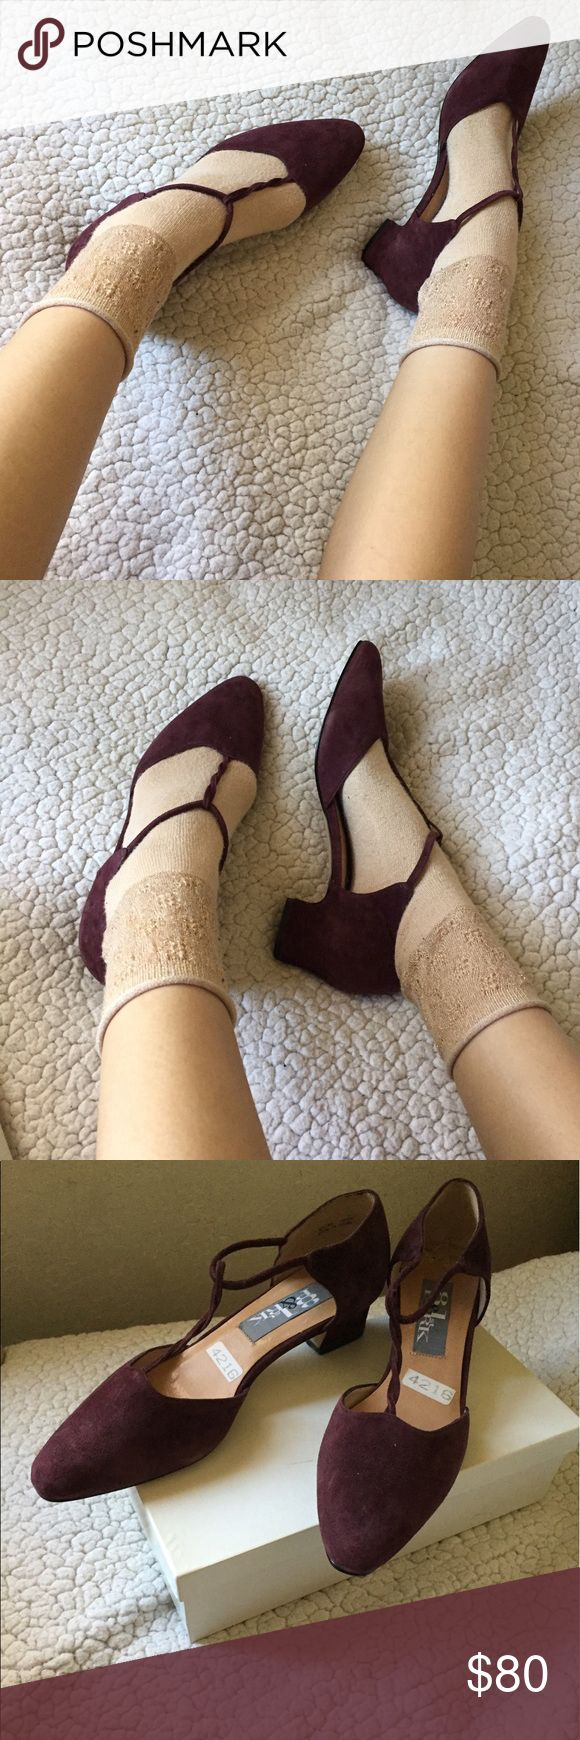 • nwt vtg burgundy heels • adorable burgundy maroon colored heels with delicate twisted ties. creates an innocent marry Jane look. rounded pointy toe cap and a whisper of a heel. truly stunning.   vintage, new in box. from the 90s. no flaws or defects.   •no trades please •ask questions! •smoke free/cat and dog friendly home Vintage Shoes Heels